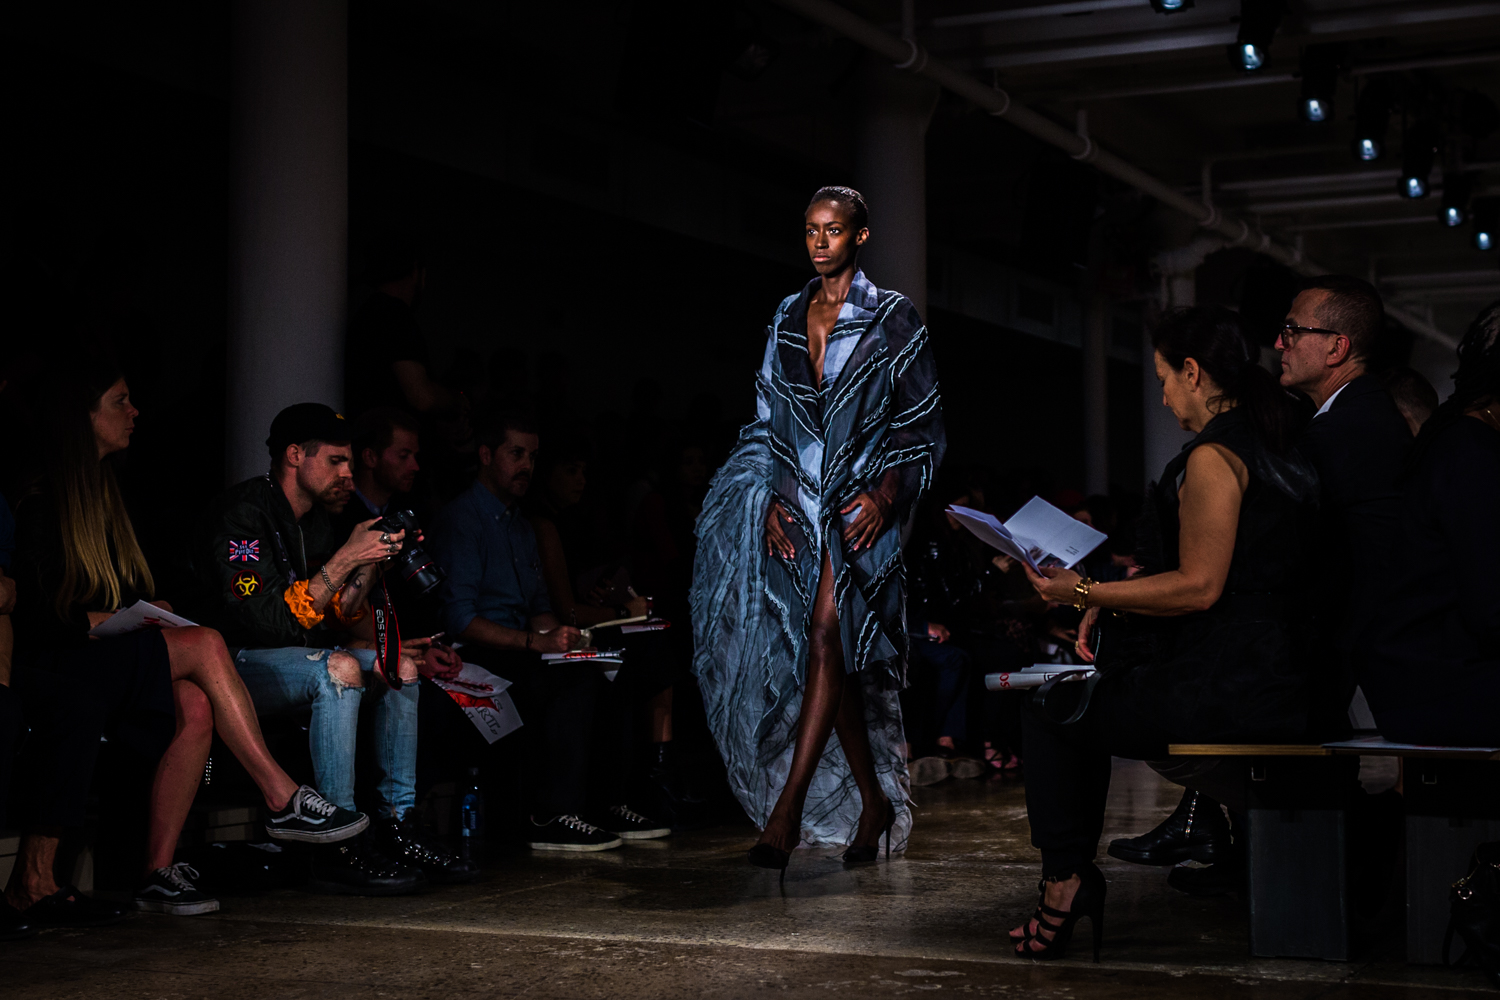 Fashion Week Launches With Parsons Mfa Student Showcase The New School Free Press